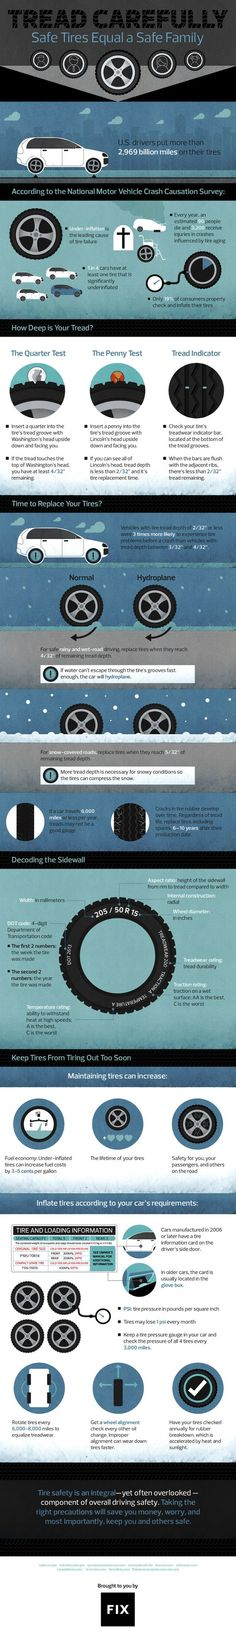 Everything You Need to Know About Managing your Tires In One Handy Graphic